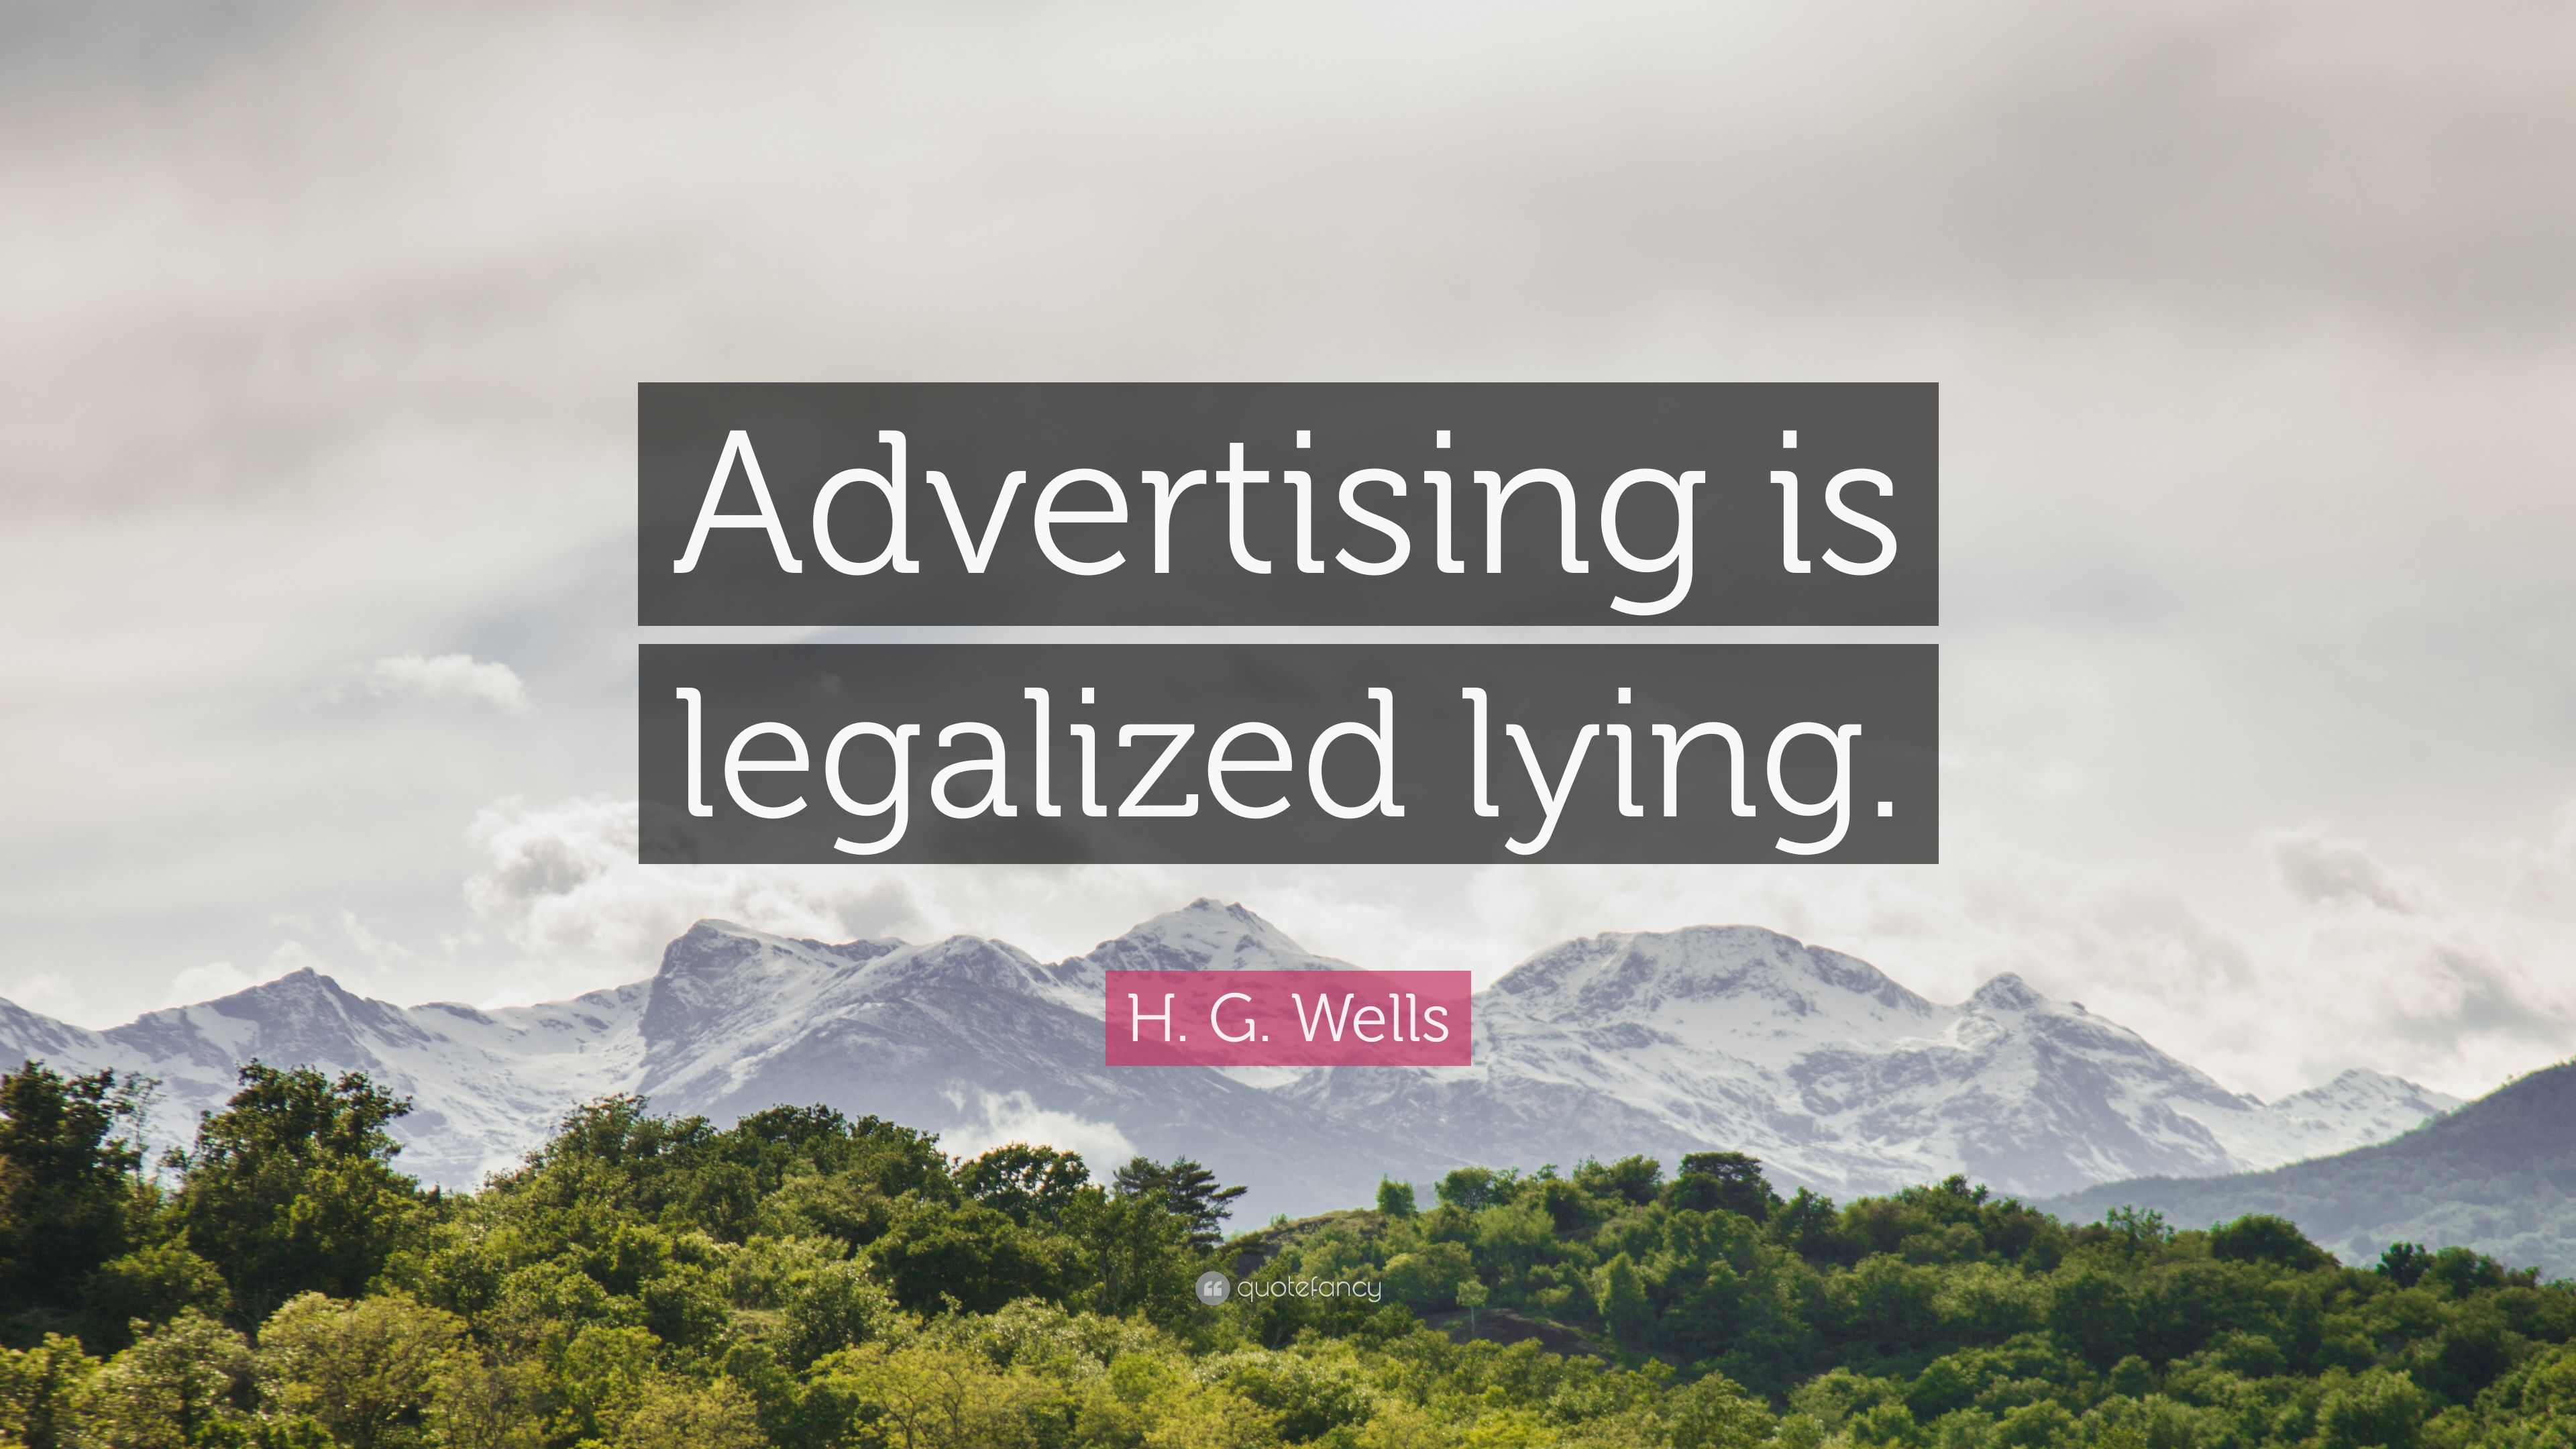 Advertisement Is a Legalized Form of Lying